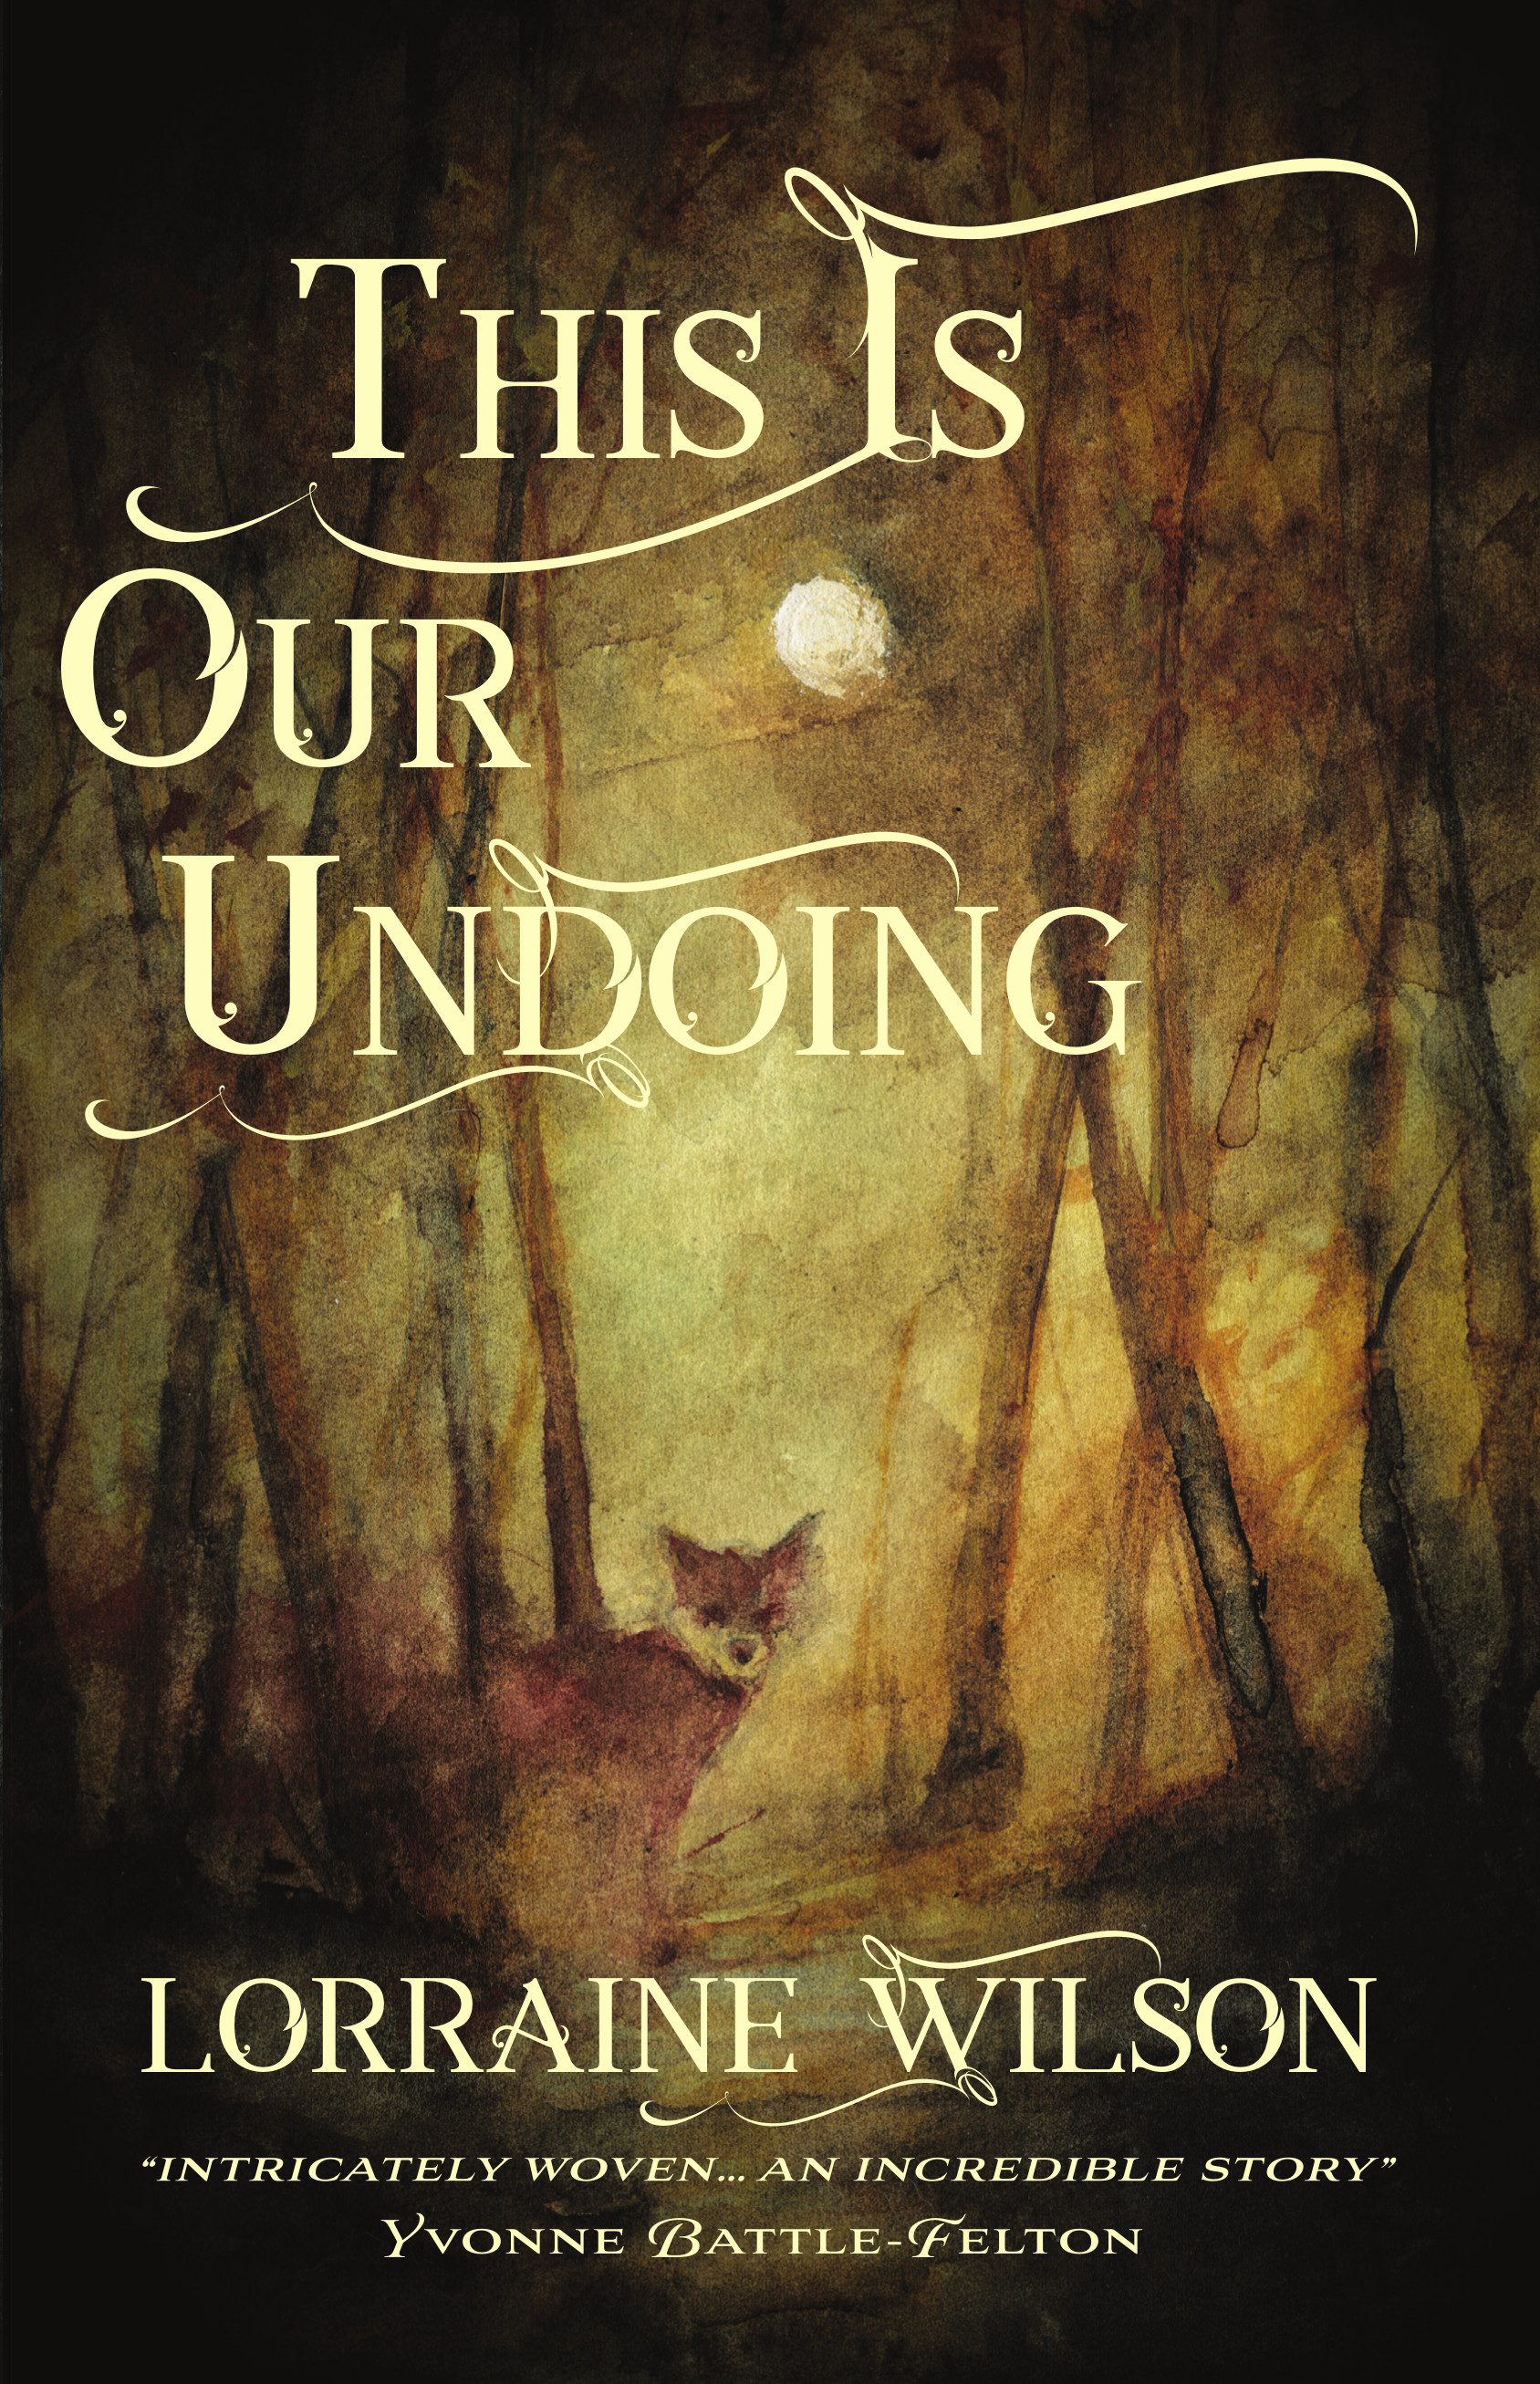 This Is Our Undoing by Lorraine Wilson. Cover art by Daniele Serra.